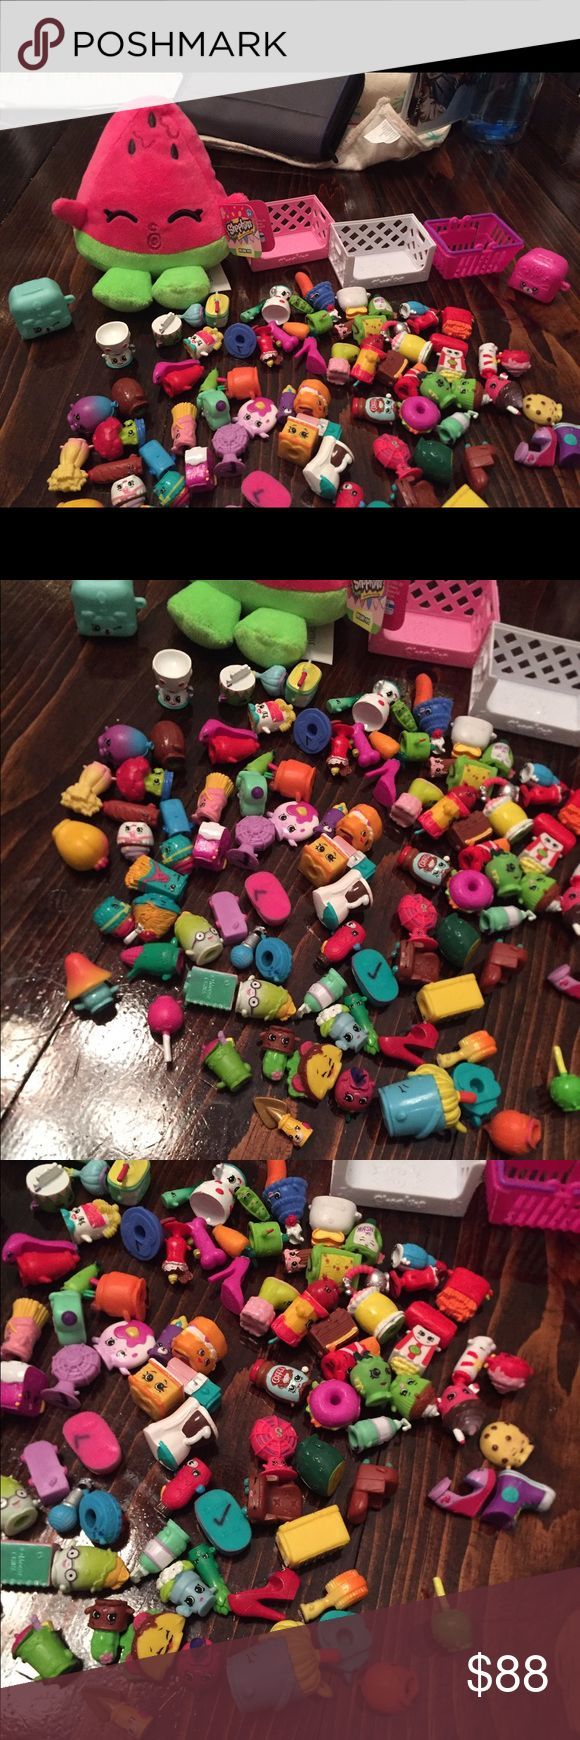 100 shopkins, stuffed animal, 3 baskets, 2 fridges Come with everything you see here! Some may have a tiny marking beneath them because my sister wanted to know which where hers when she had her friends over and they played. Stuff animal is new with tags Other